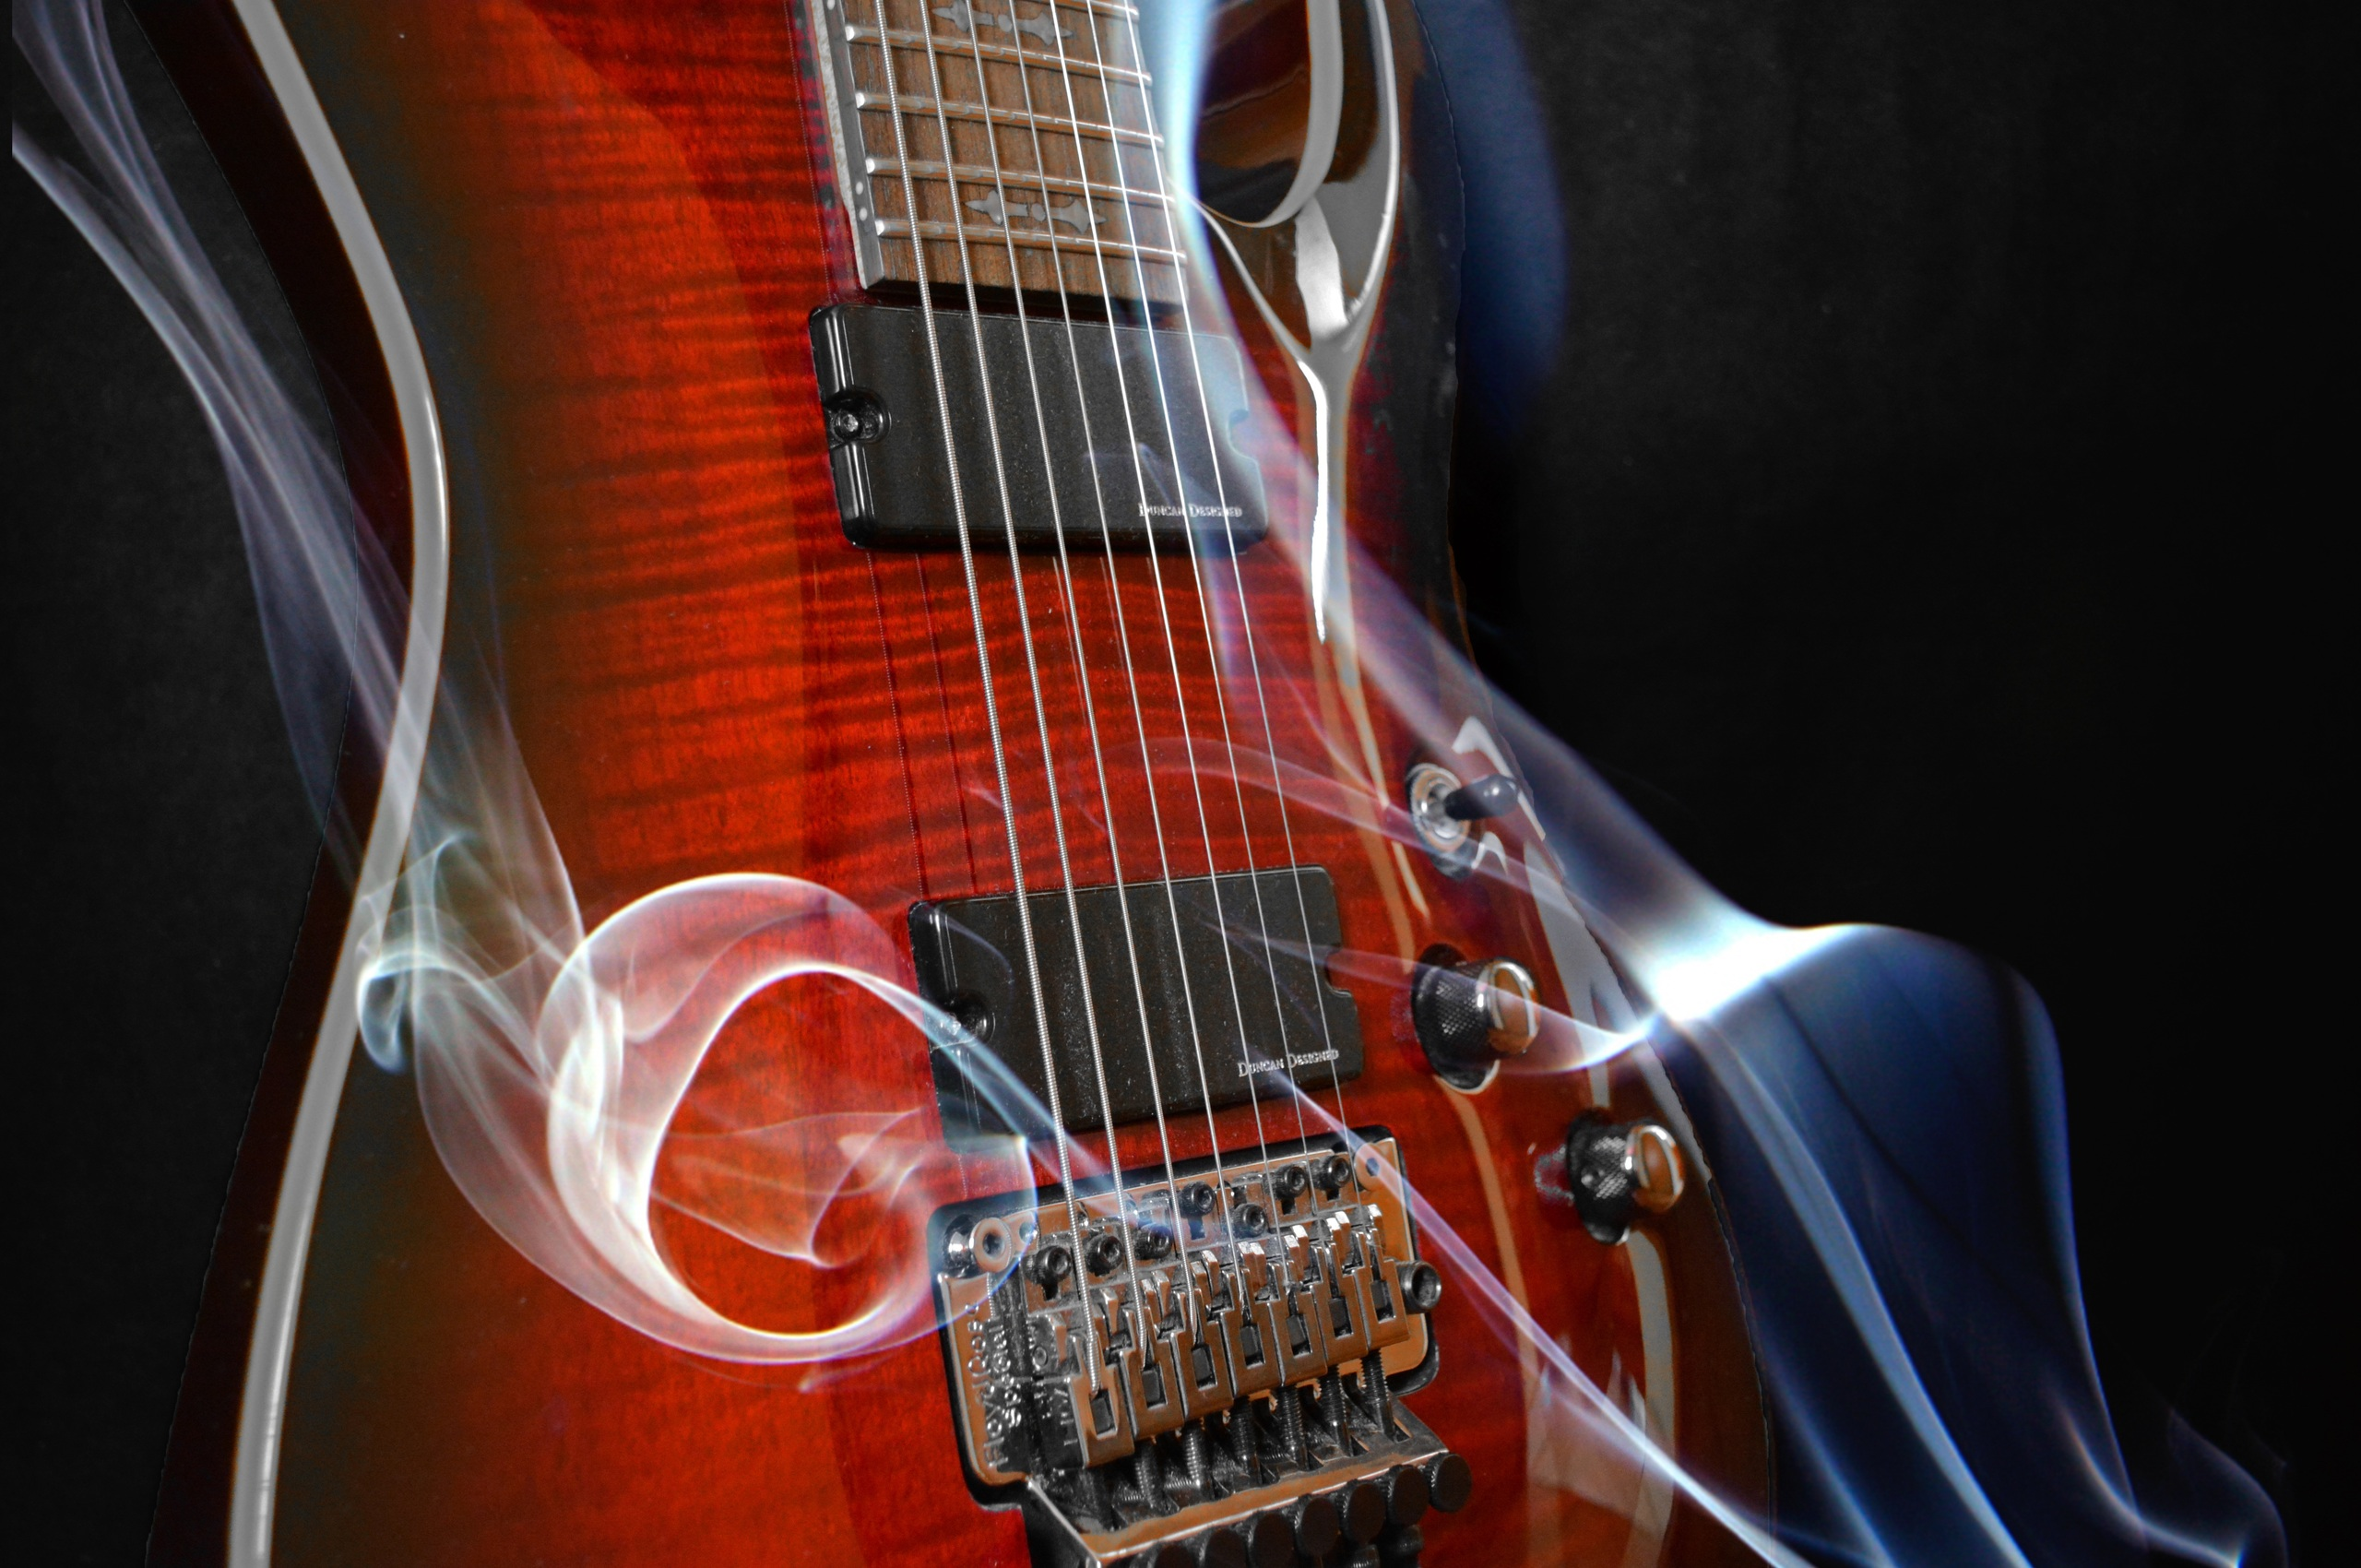 2560x1700 Elctric Guitar 5k Chromebook Pixel Hd 4k Wallpapers Images Backgrounds Photos And Pictures